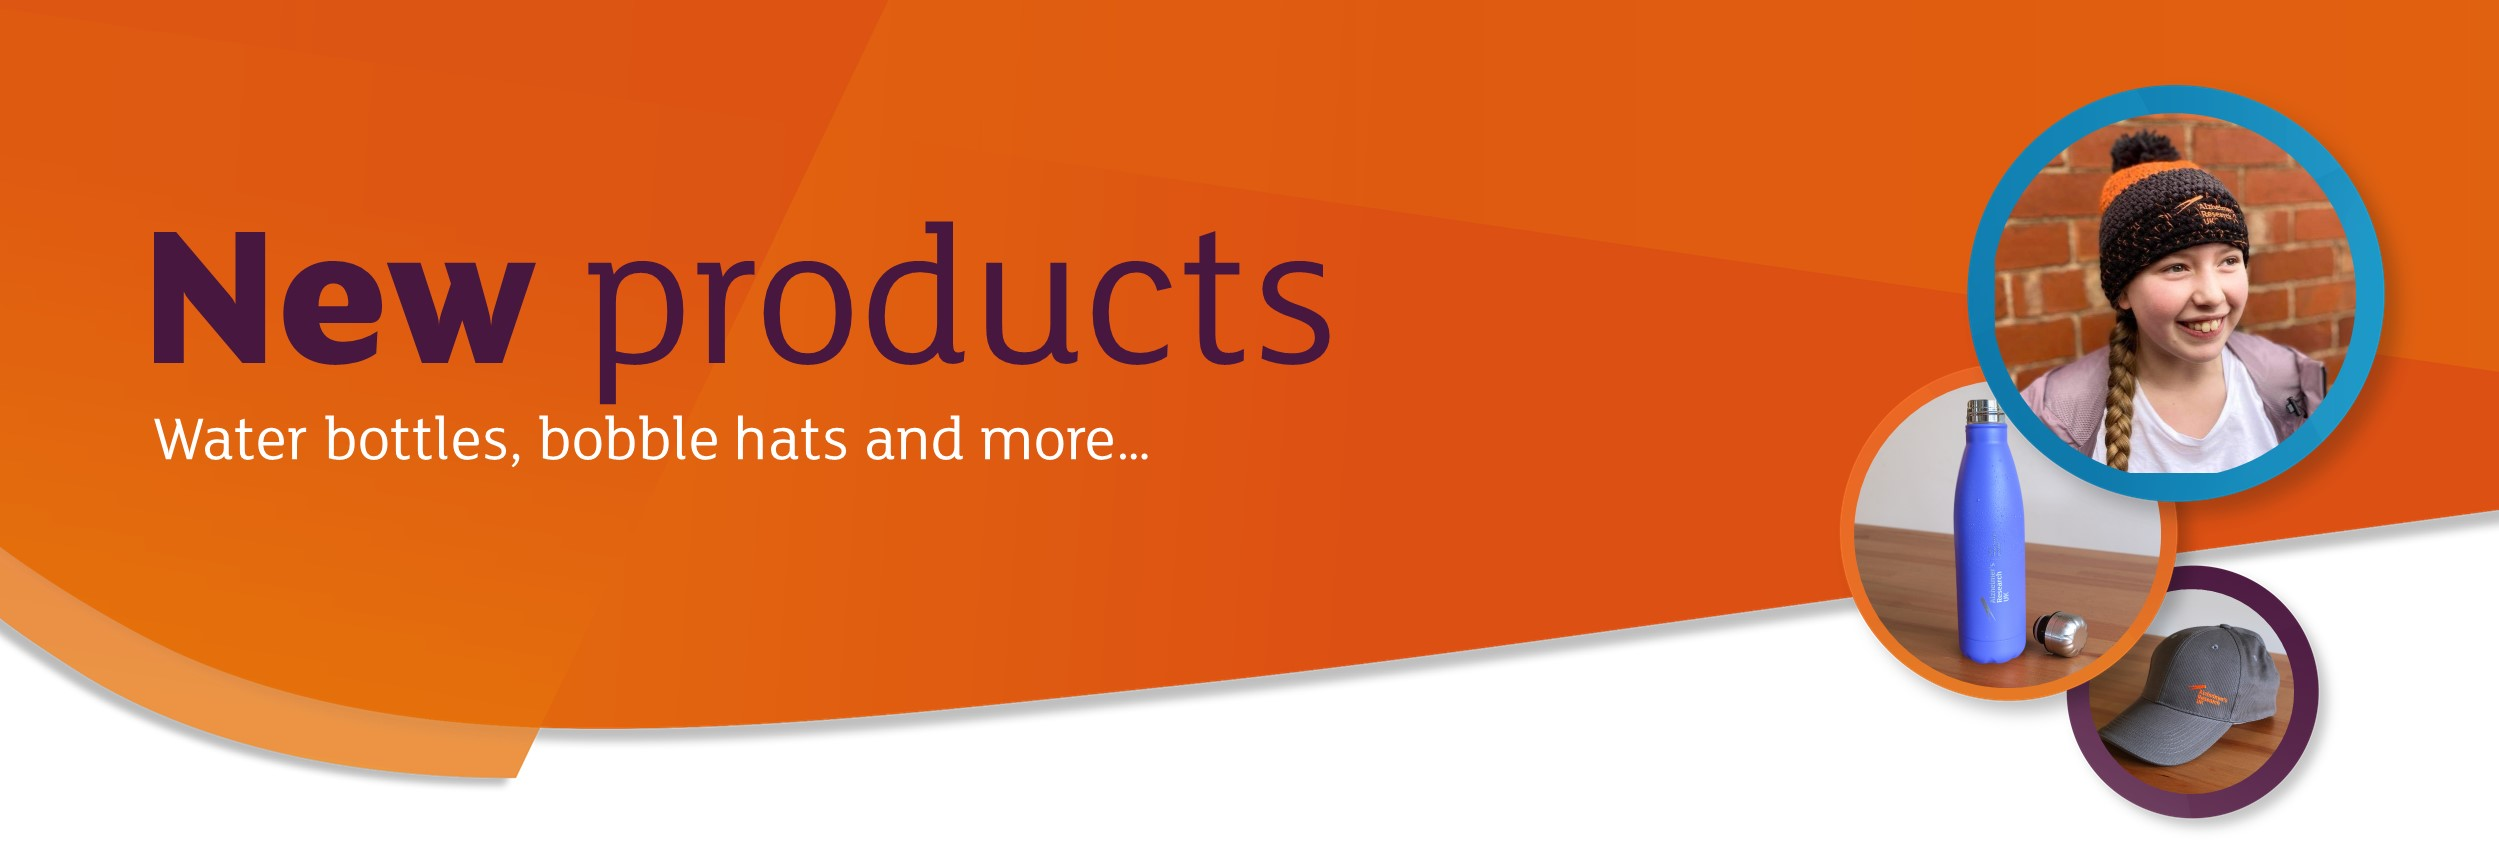 new products shop banner